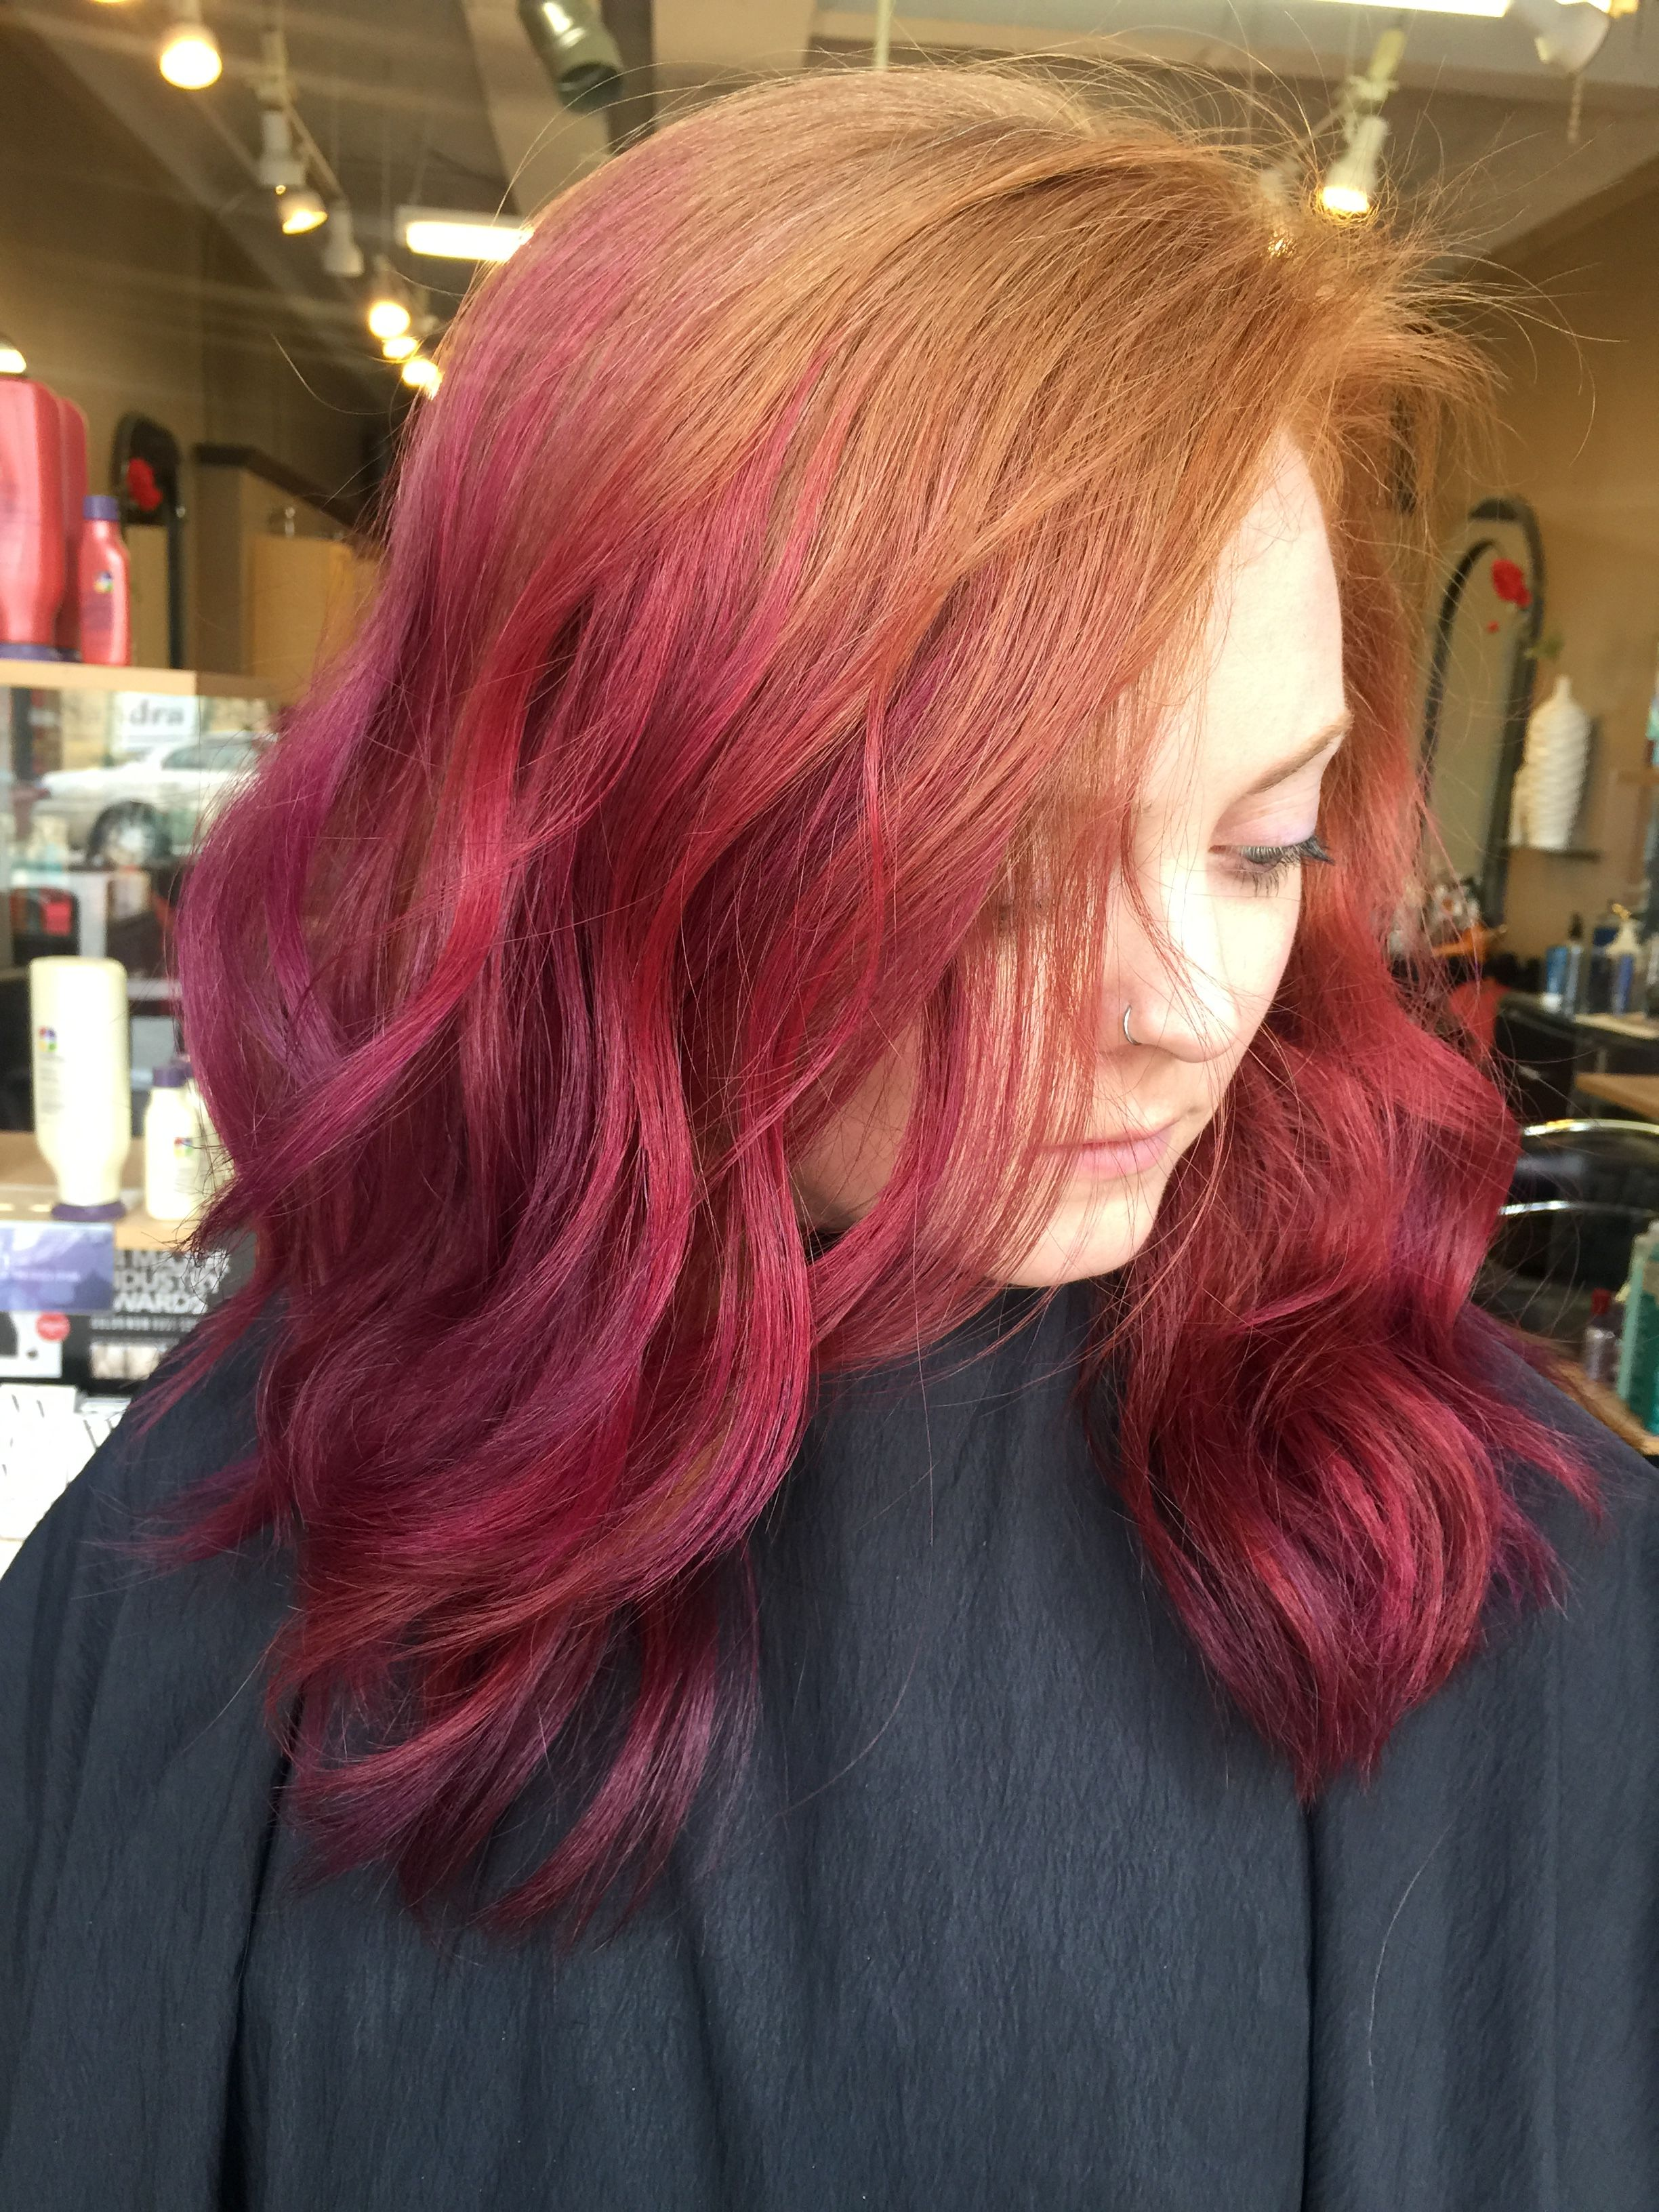 Natural Redhead With Purple And Pink Fade Natural Red Hair Red Hair Fade Pink Hair